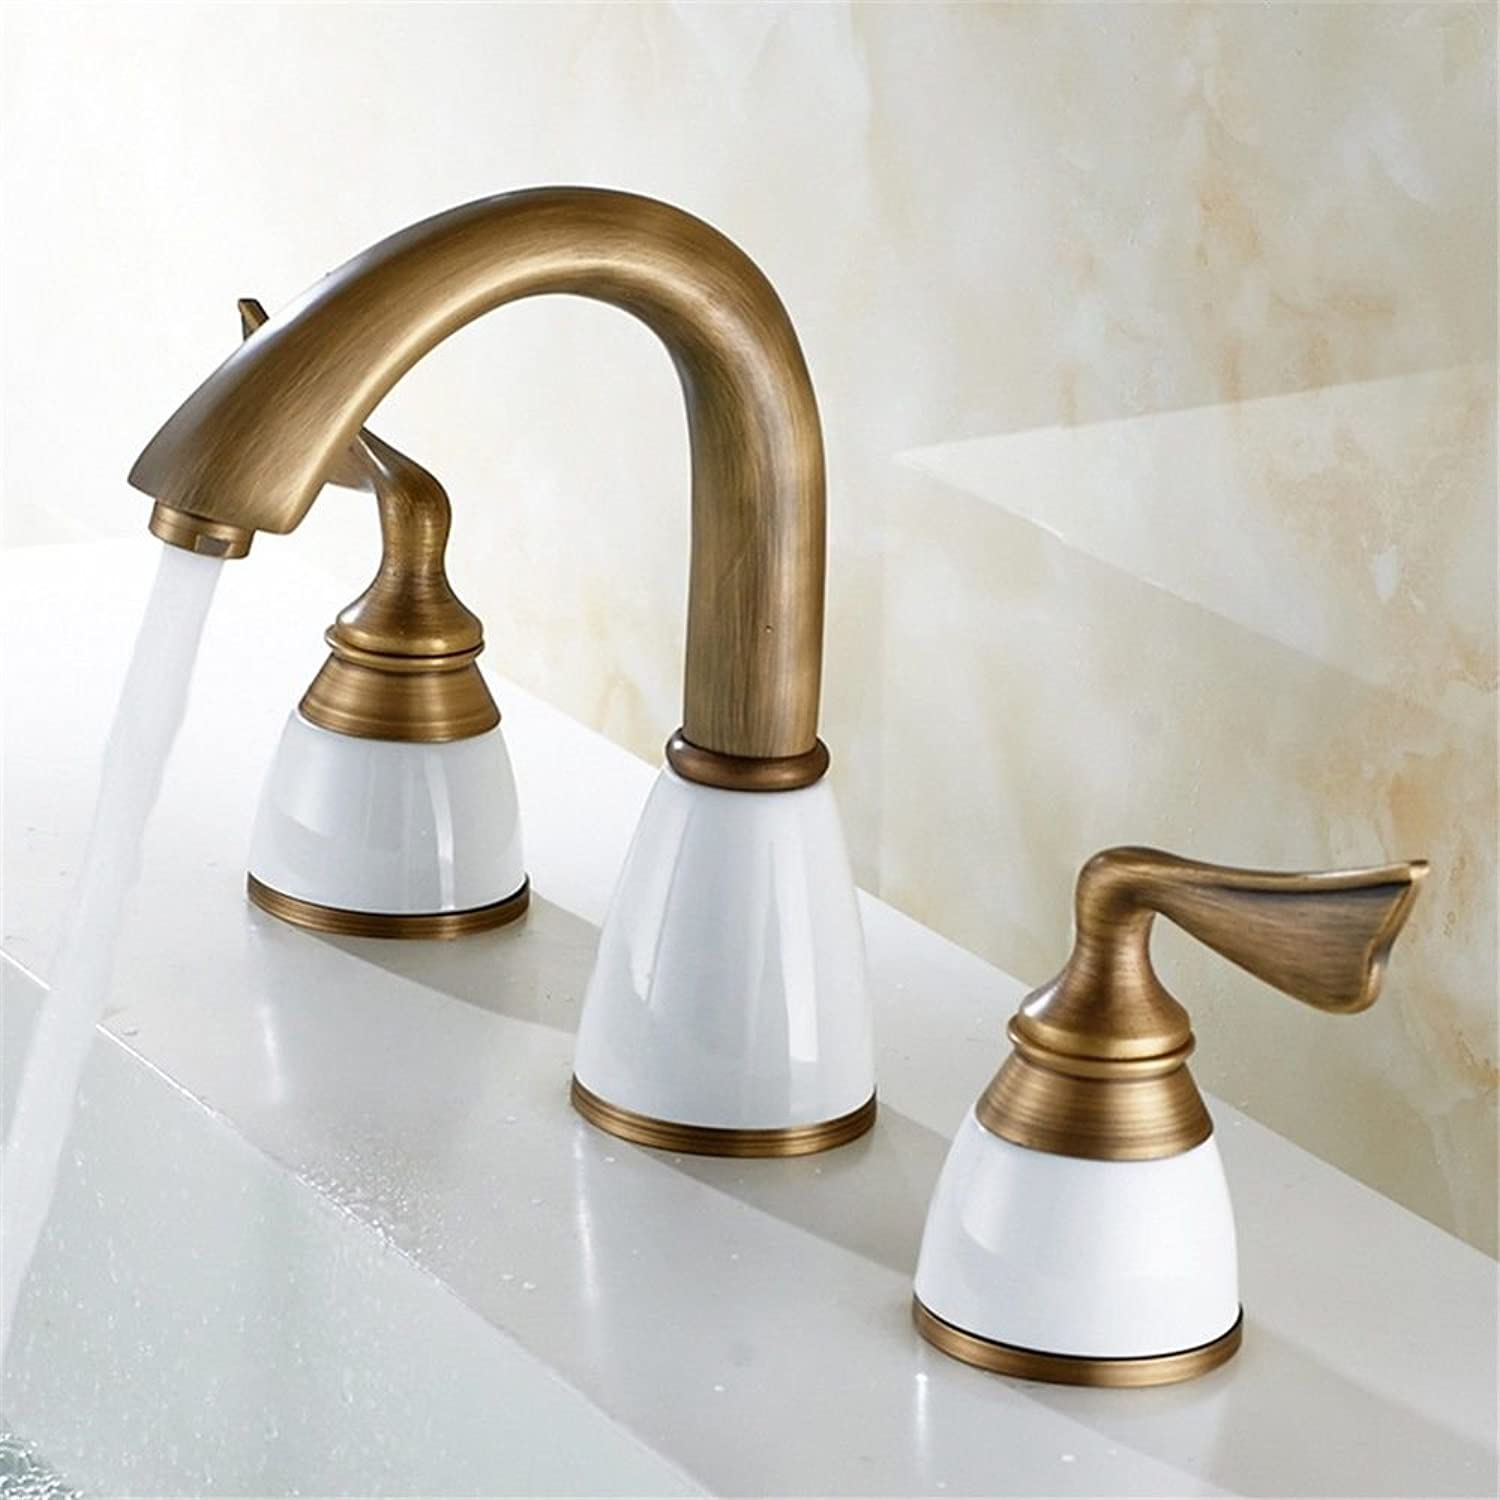 ETERNAL QUALITY Bathroom Sink Basin Tap Brass Mixer Tap Washroom Mixer Faucet Antique copper basin-wide three-piece faucet three hole split faucet hot and cold-water fauc